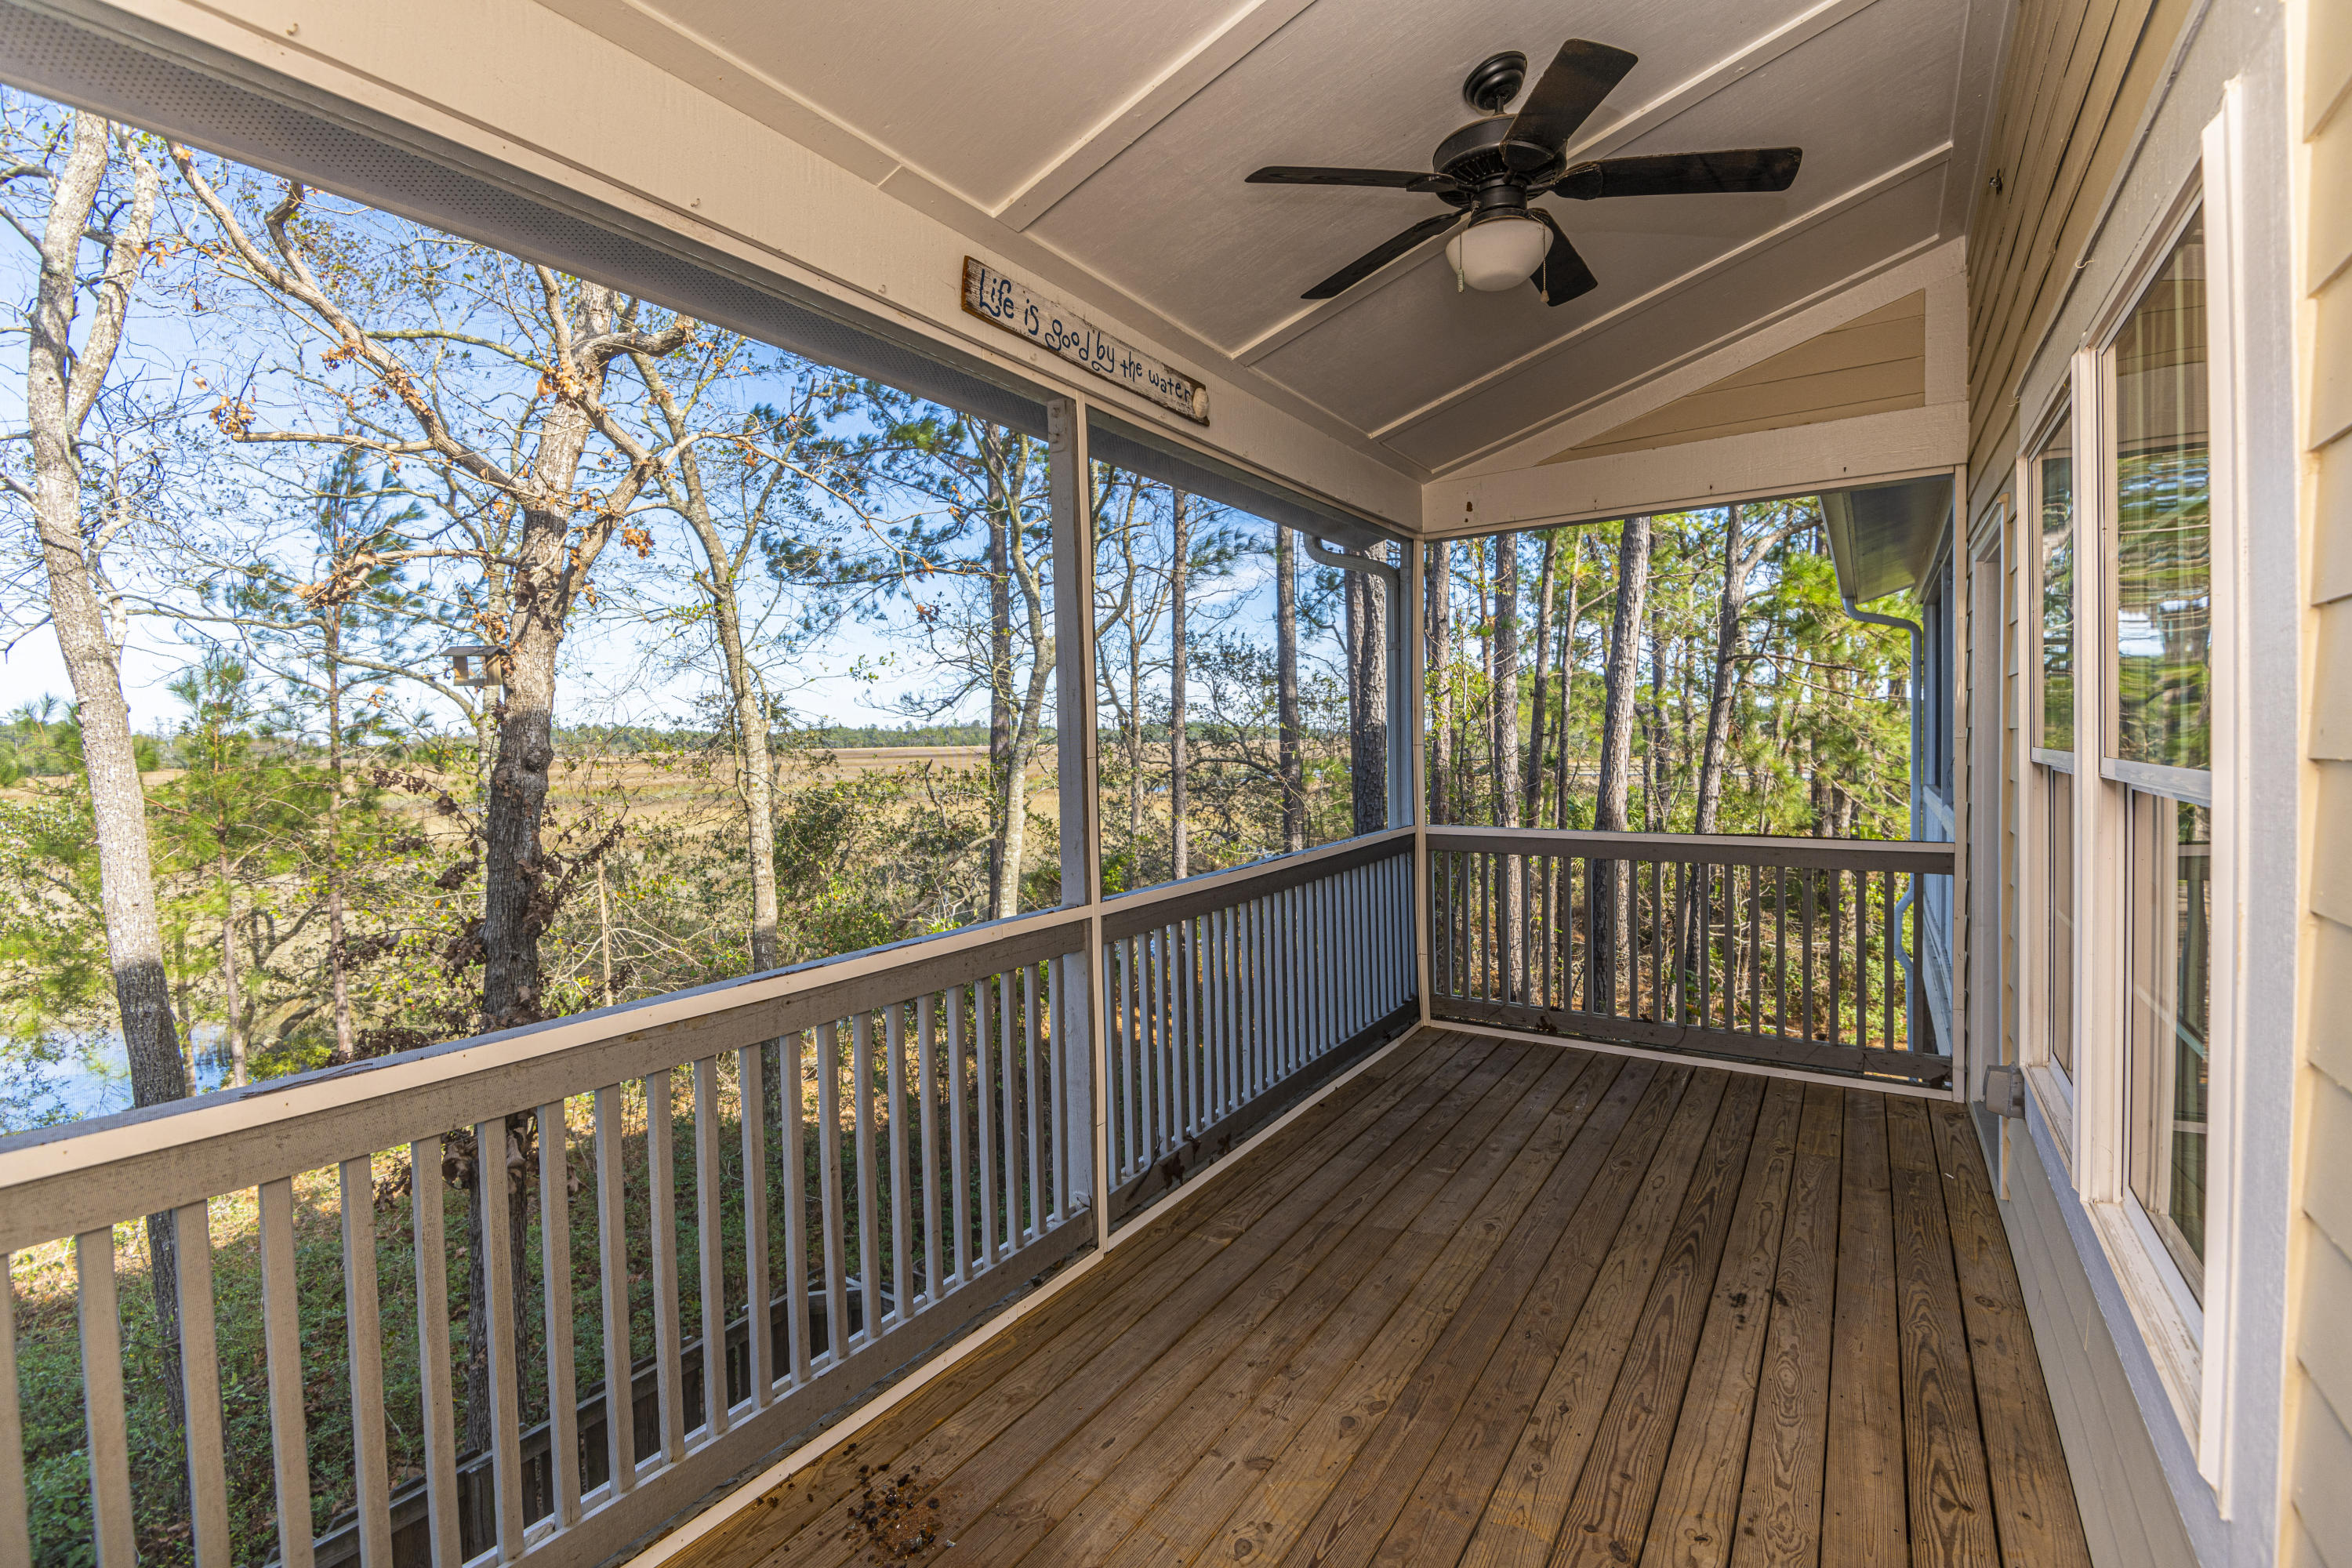 Etiwan Pointe Homes For Sale - 108 Winding Creek, Mount Pleasant, SC - 13